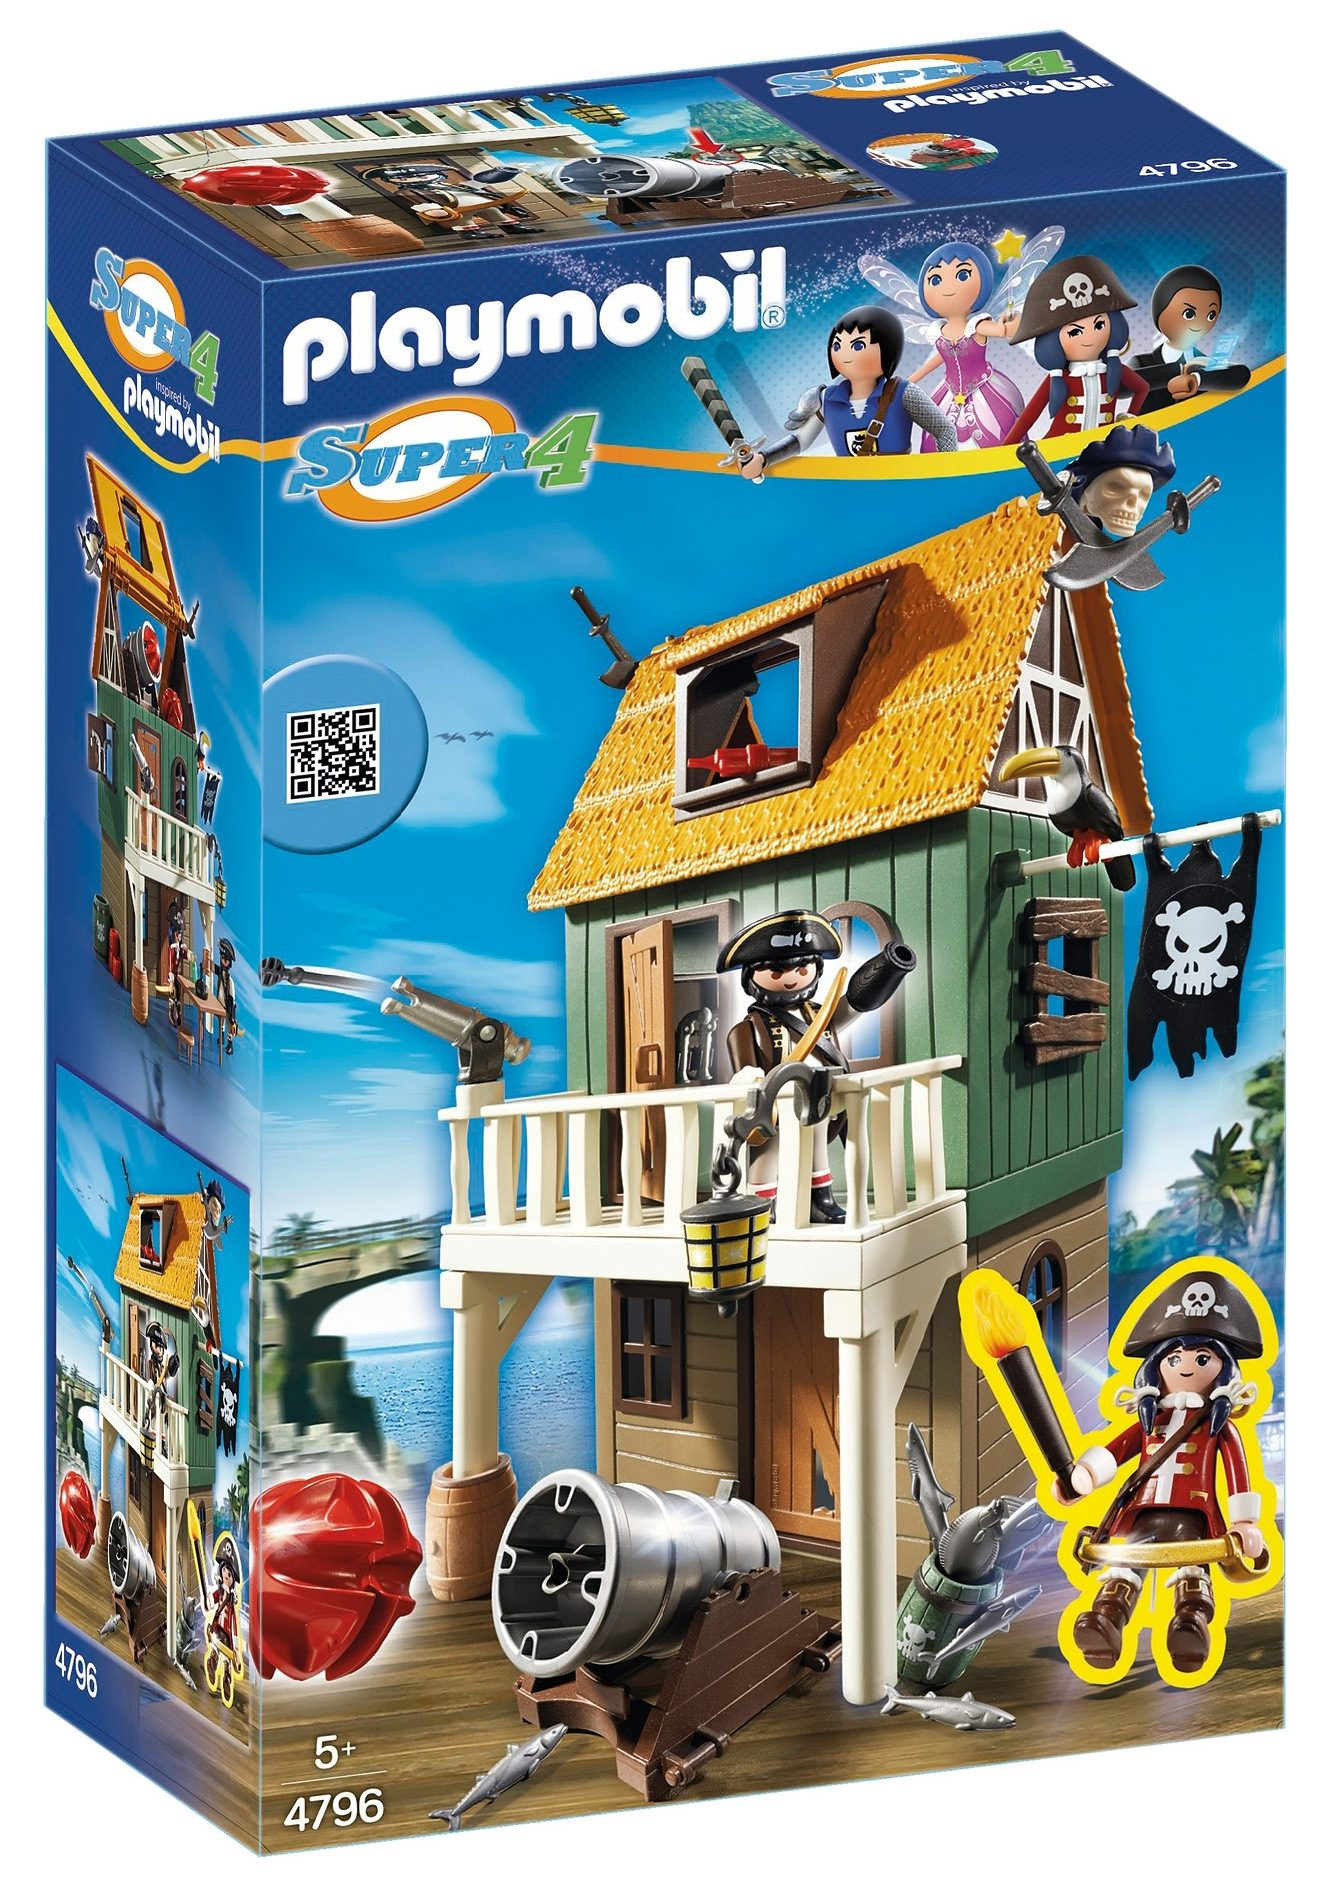 Playmobil® Getarnte Piratenfestung mit Ruby (4796), Super 4®